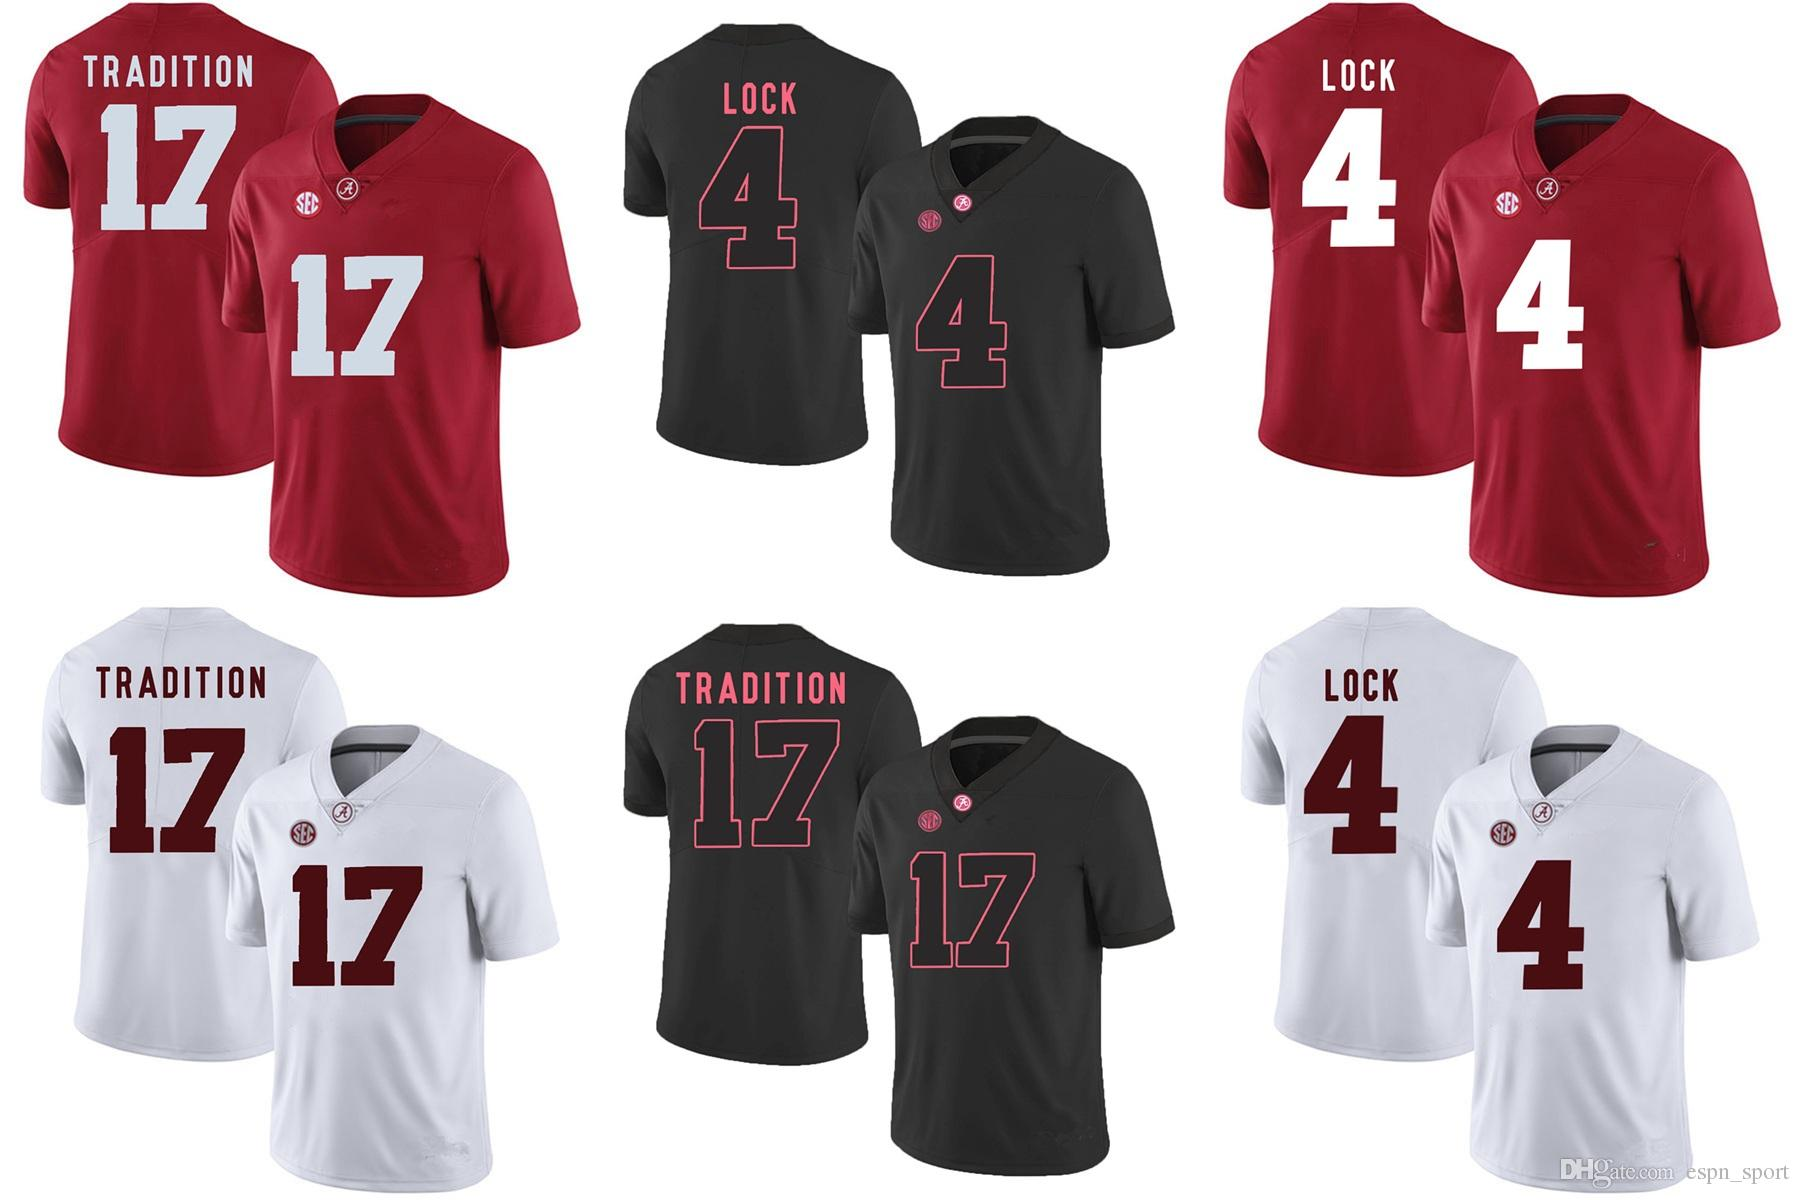 3bd1fb964 2019 Factory Outlet Alabama LOCK 4 TRADITION 17 College Football Jerseys  Size S 3XL